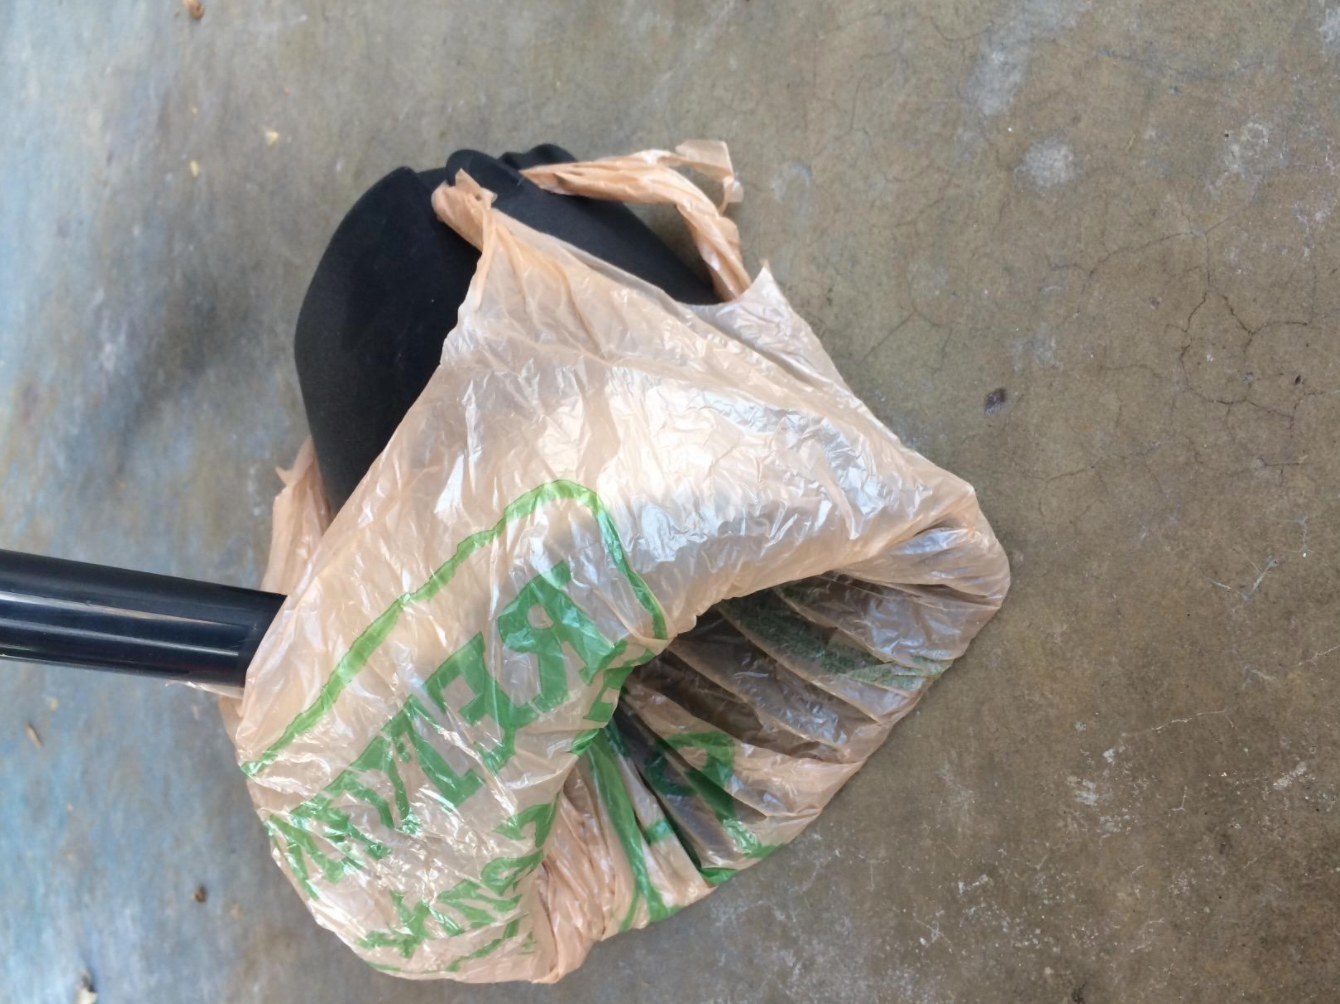 A reviewer's image of the swivel bin and rake pooper scooper with a plastic bag